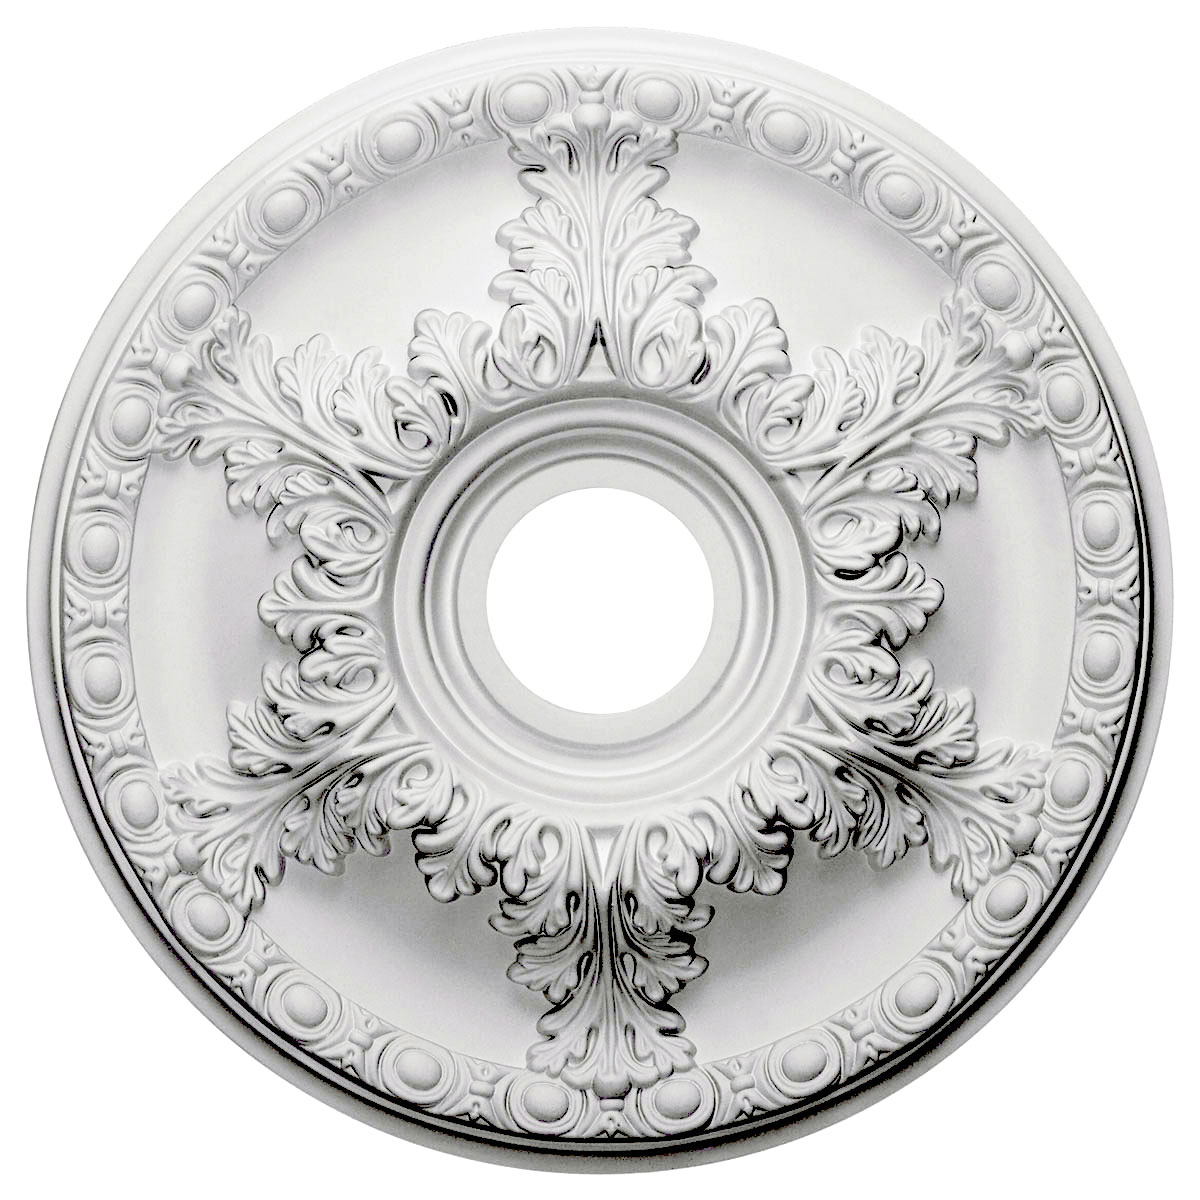 ceilings tulum co fan ceiling smsender medallions decorative fans with